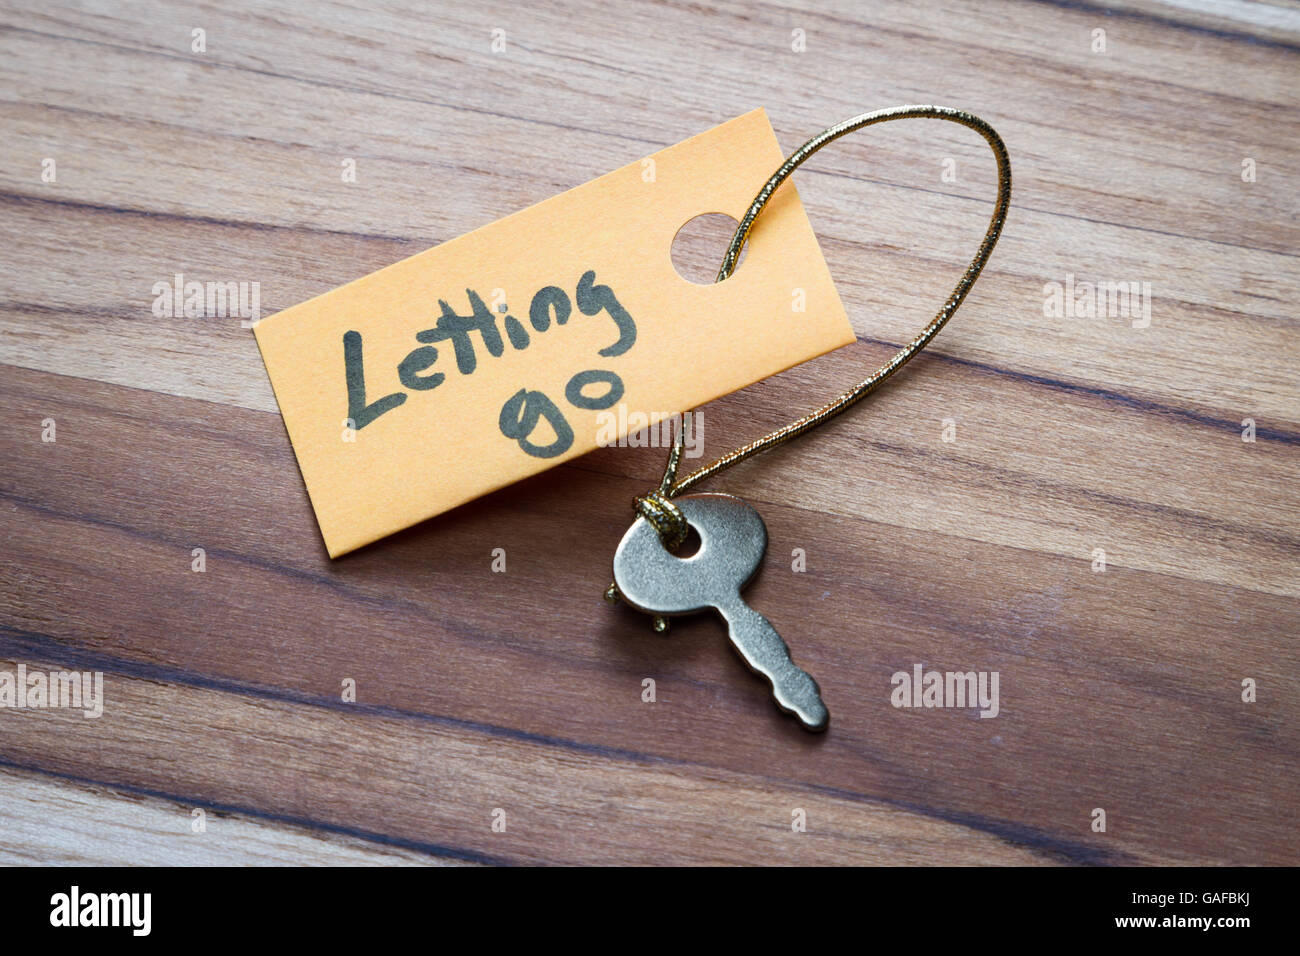 concept for a happy life using an old decorative key and a hand written tag attached by a golden cord - Stock Image